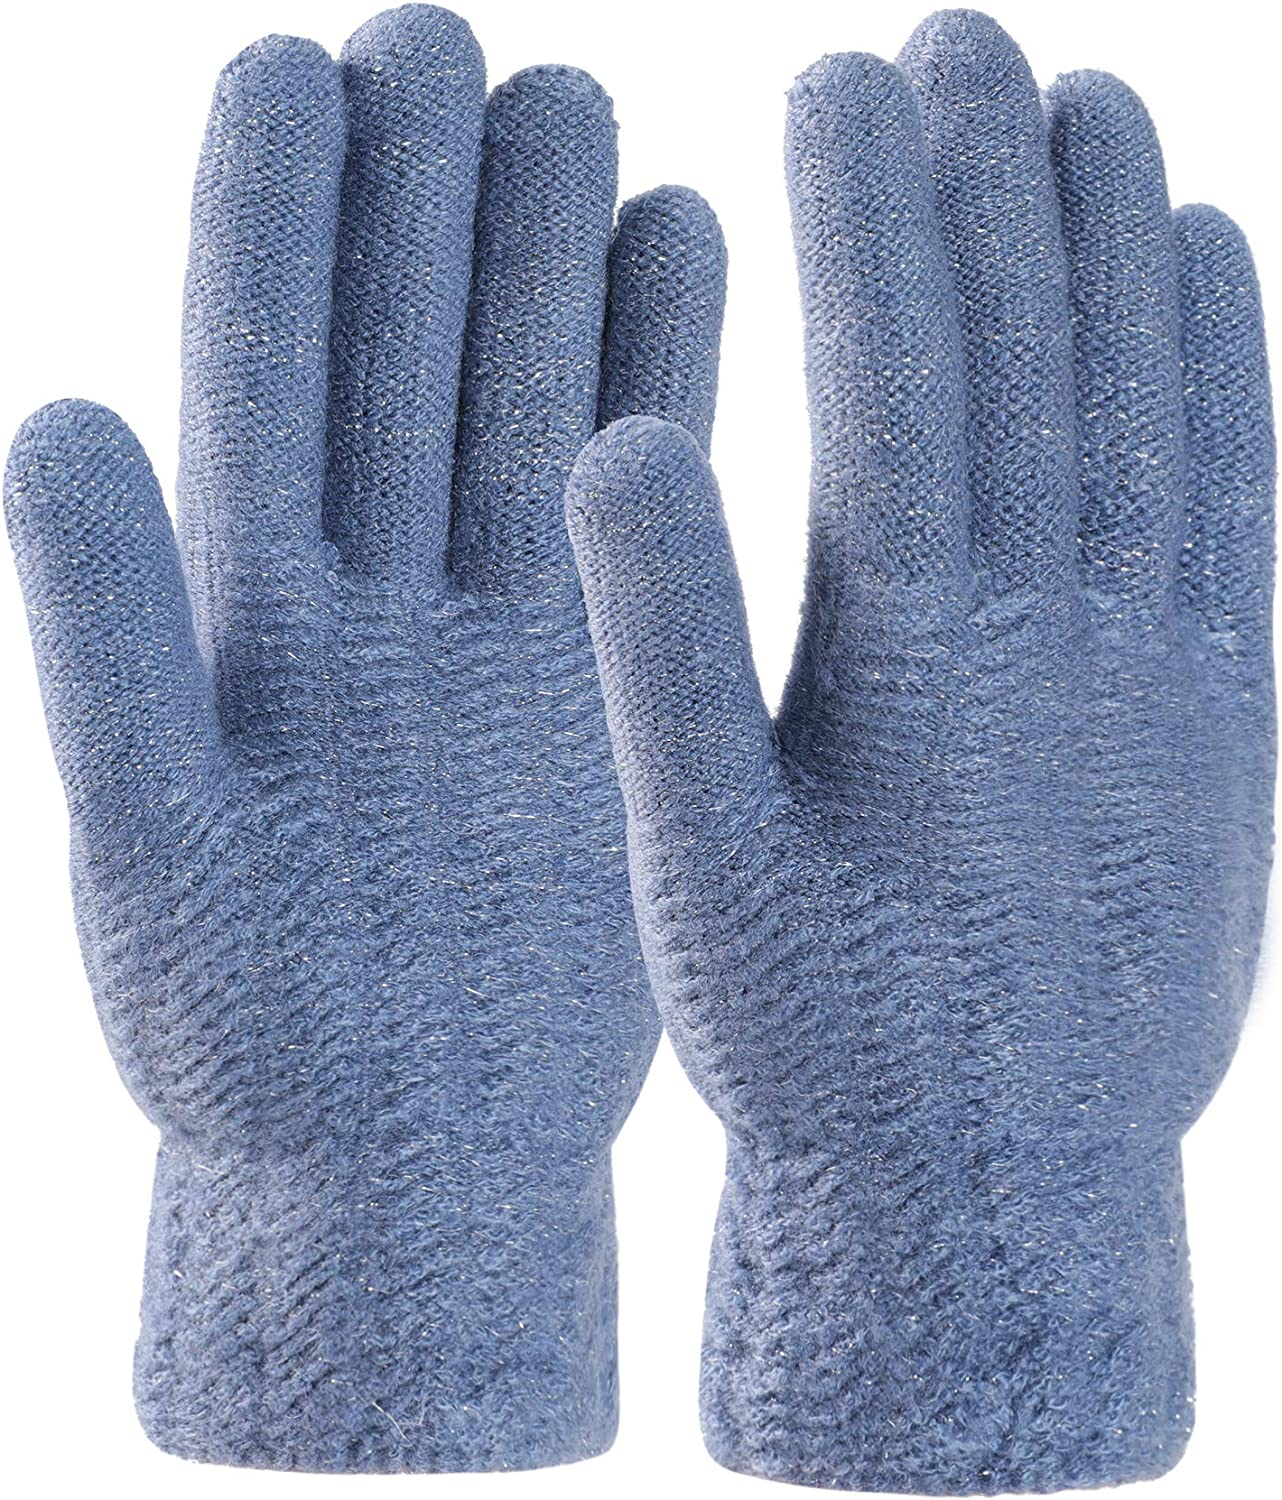 STARHOO Thermal Gloves for Women Winter Knit Gloves for Cold Weather